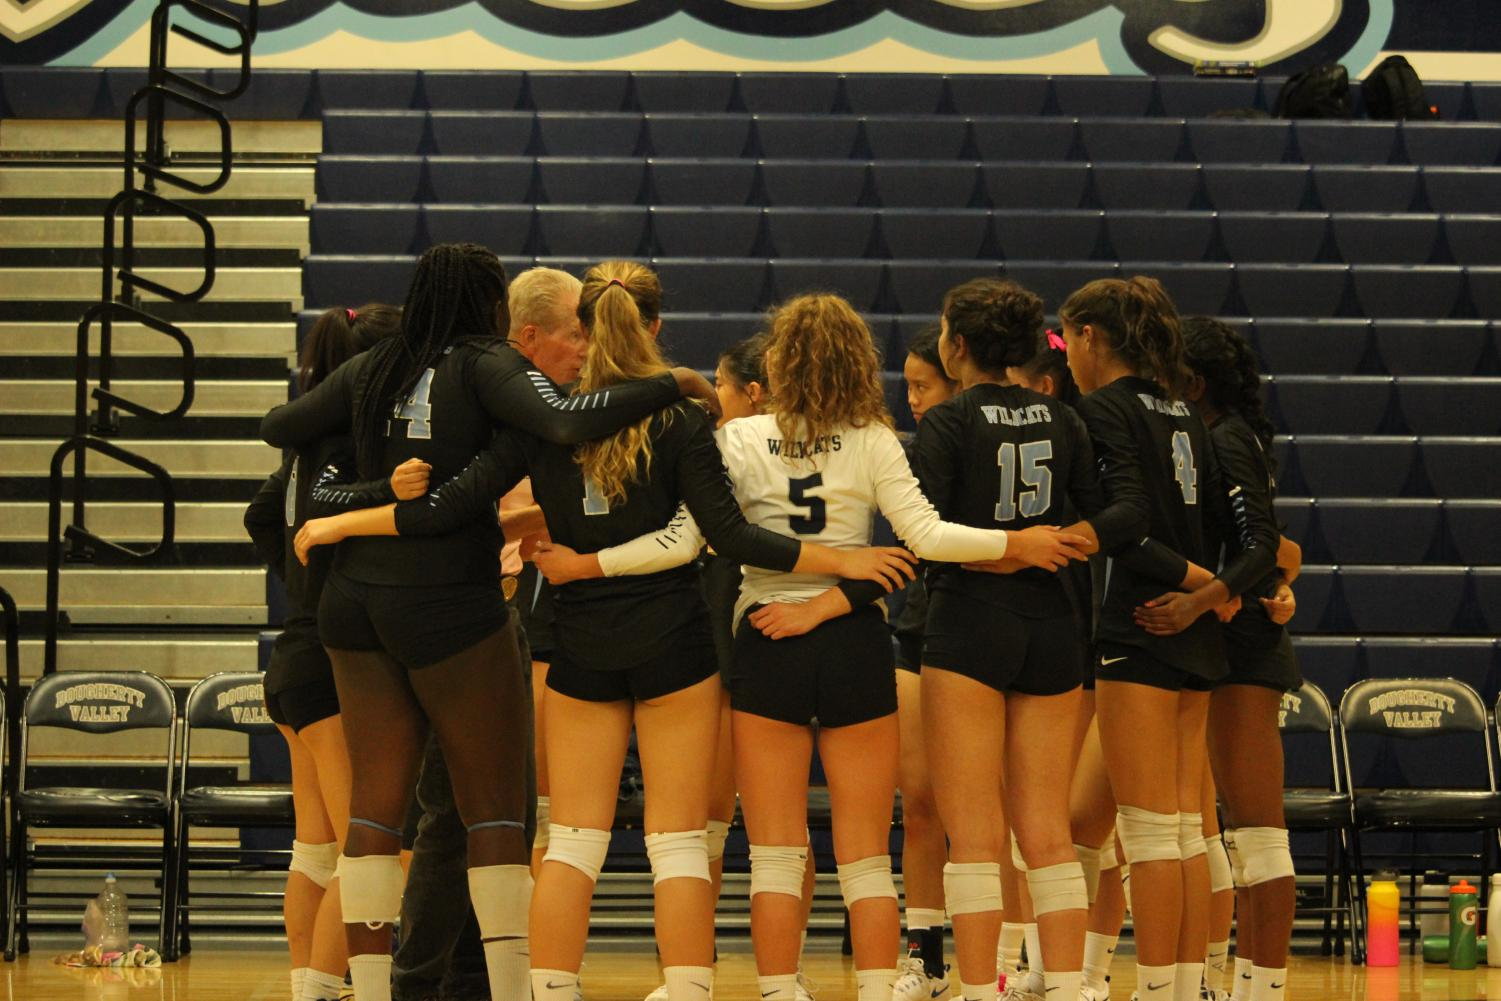 Wildcats' Women's Volleyball huddles to discuss game strategy before the first set.